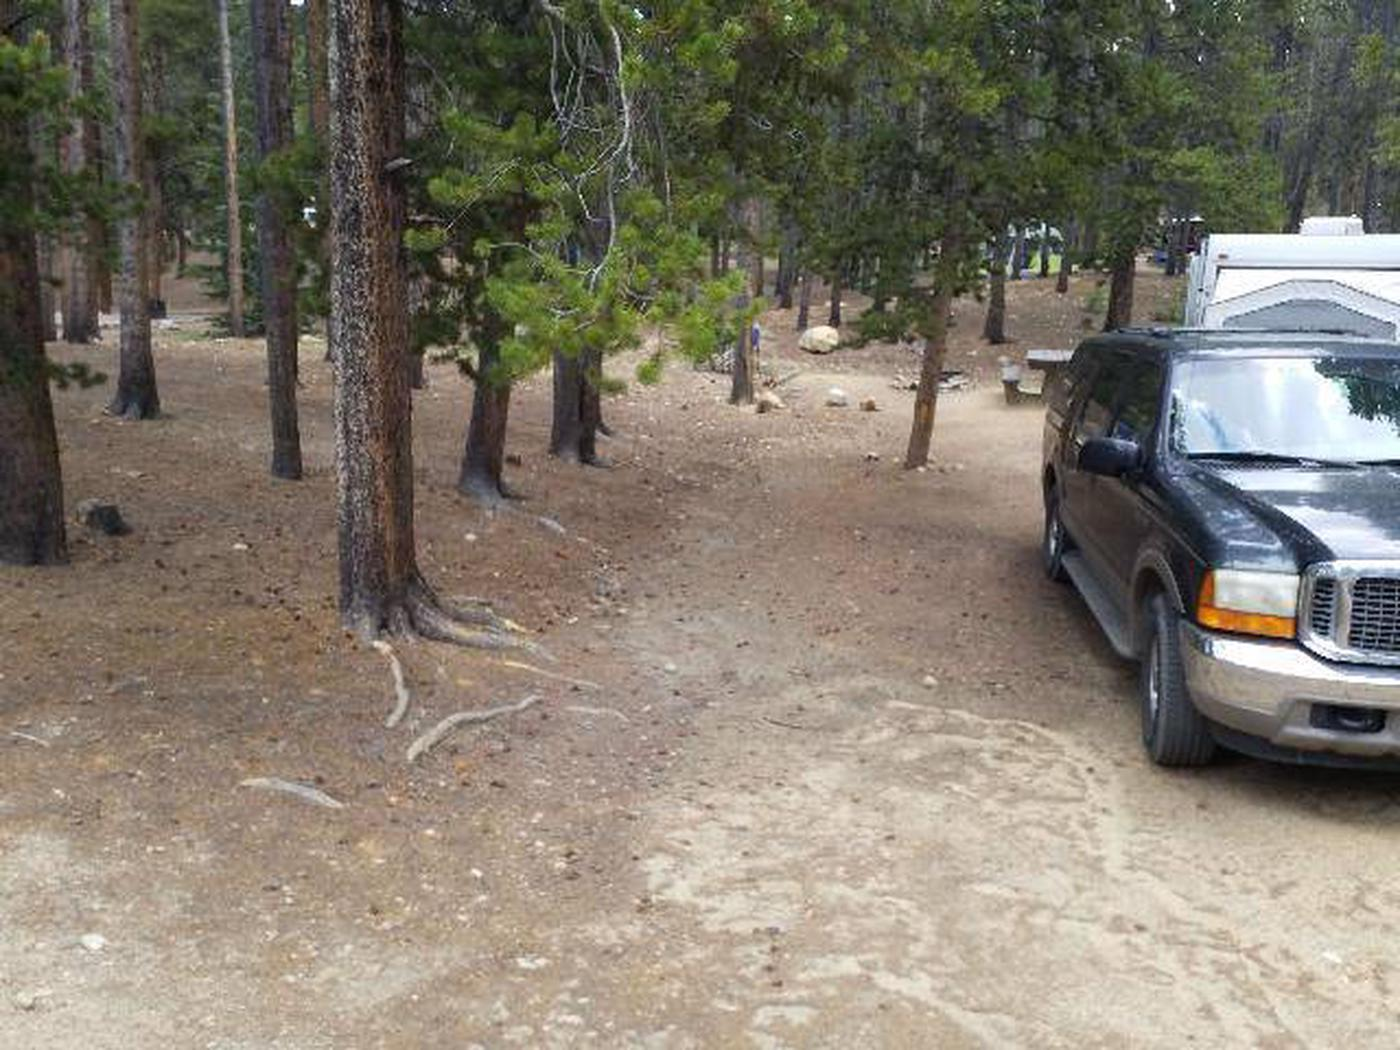 Baby Doe Campground, Site 5, vehicle